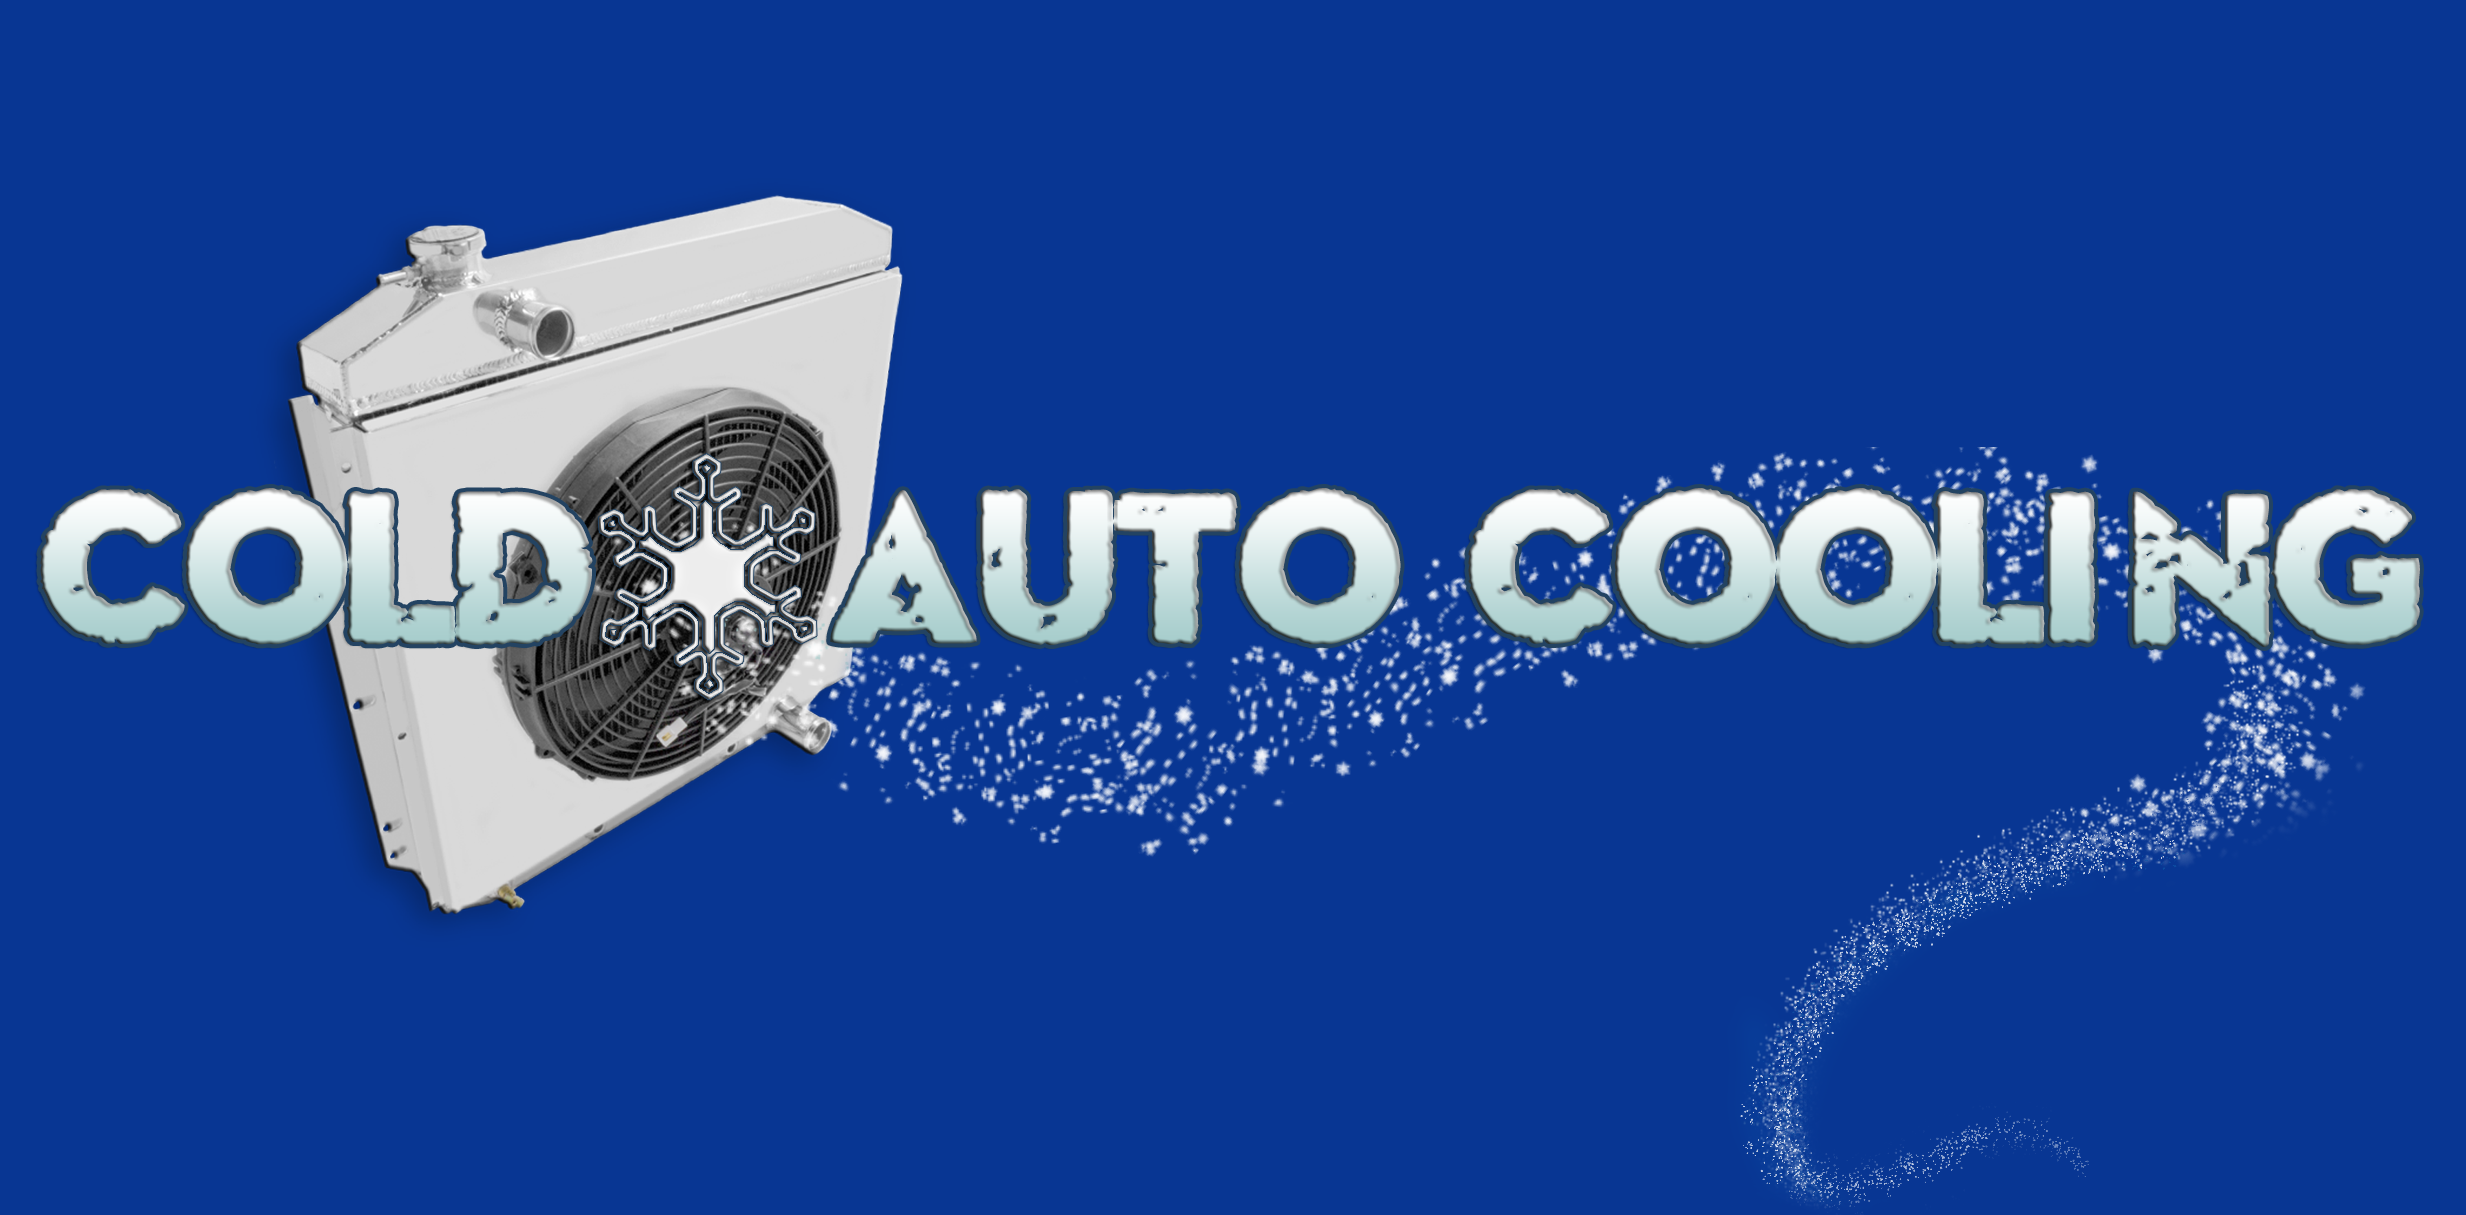 Cold Auto Cooling banner, featuring radiator and snow.